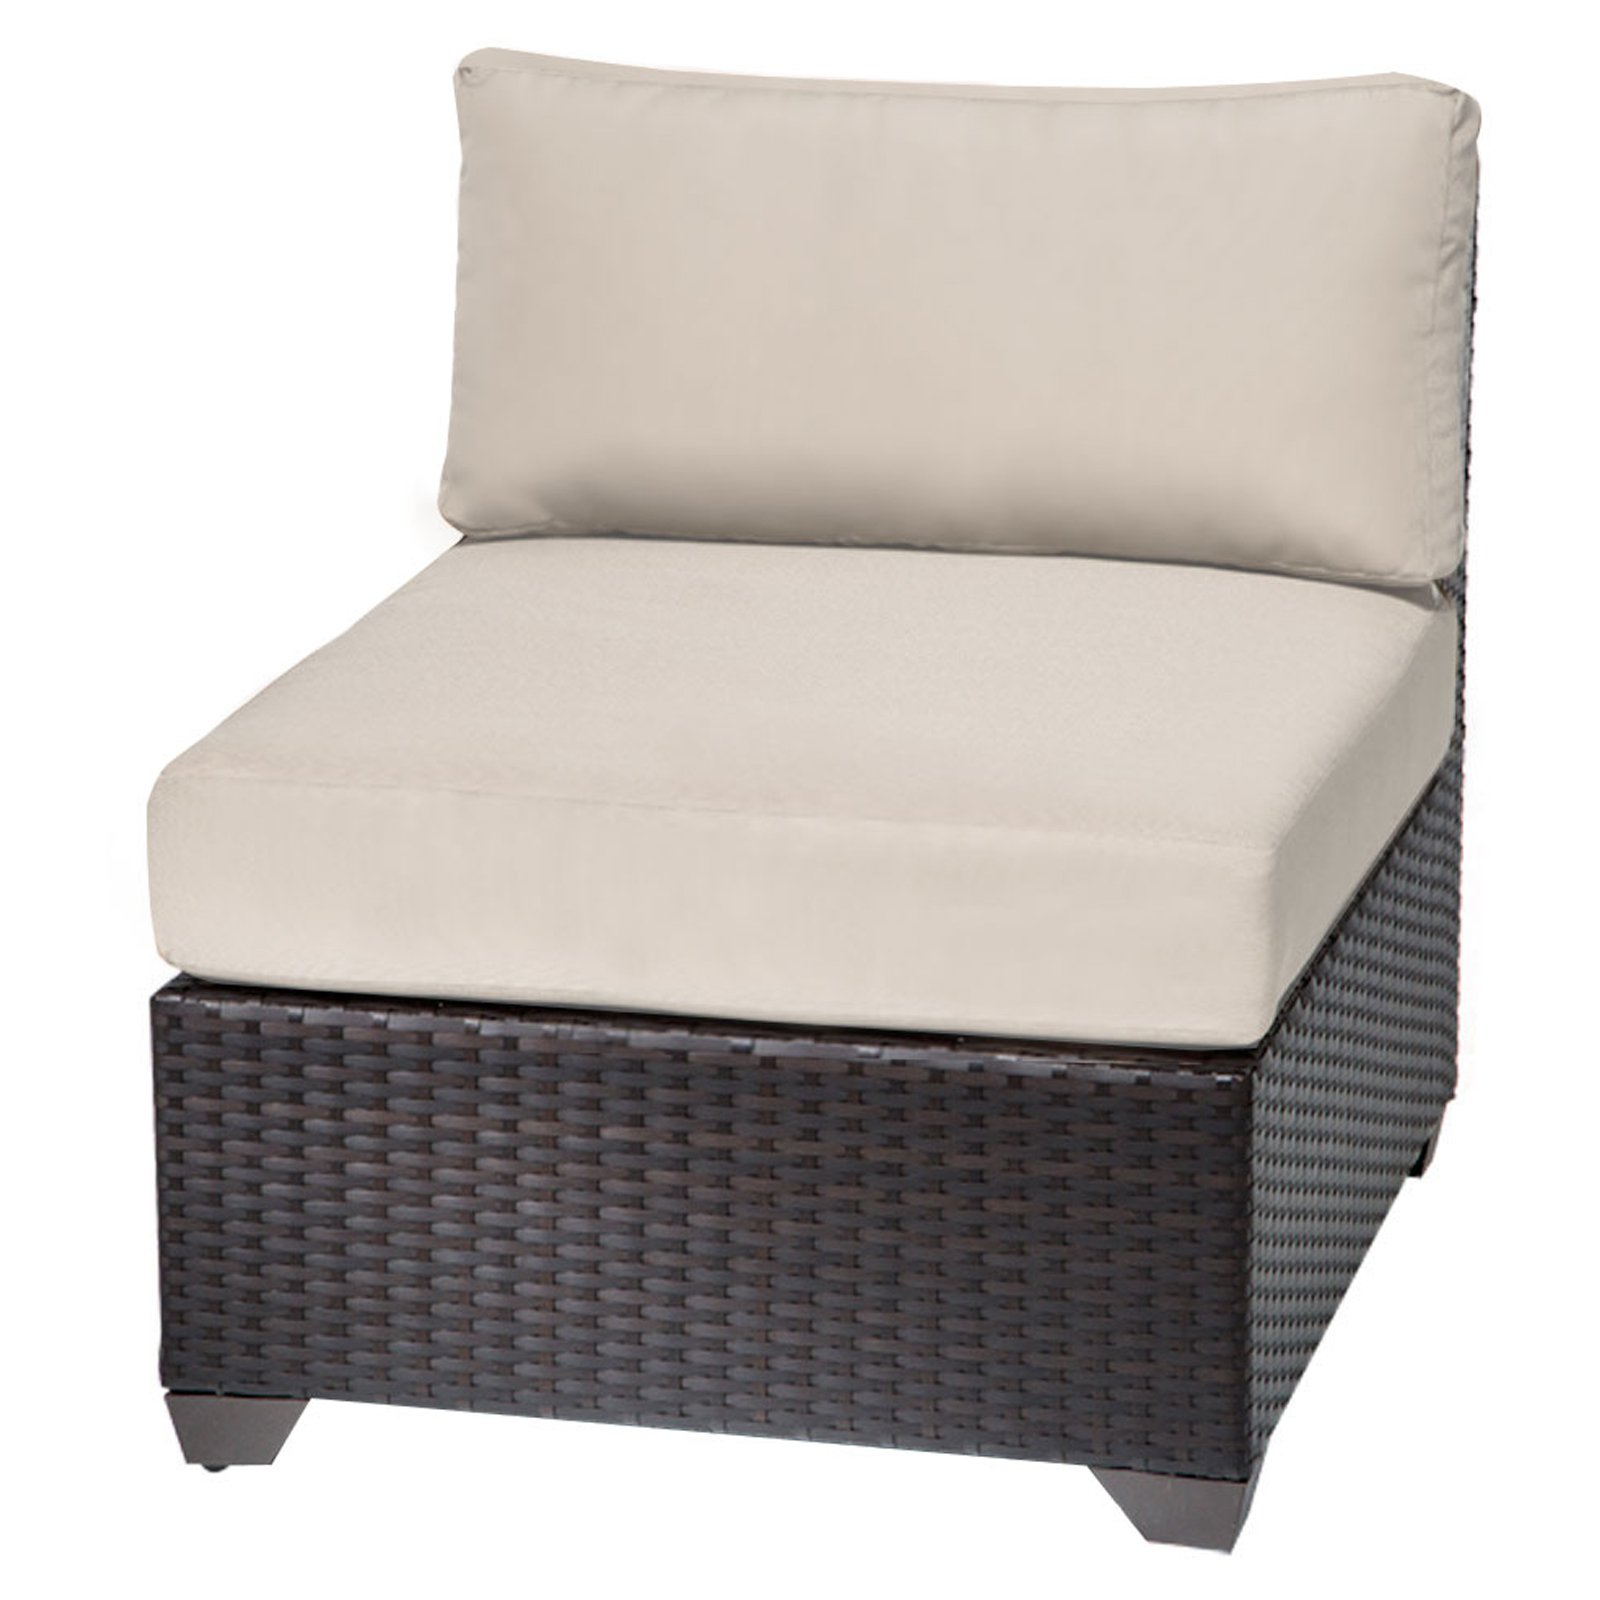 TK Classics Barbados Armless Outdoor Middle Chair with 2 Sets of Cushion Covers